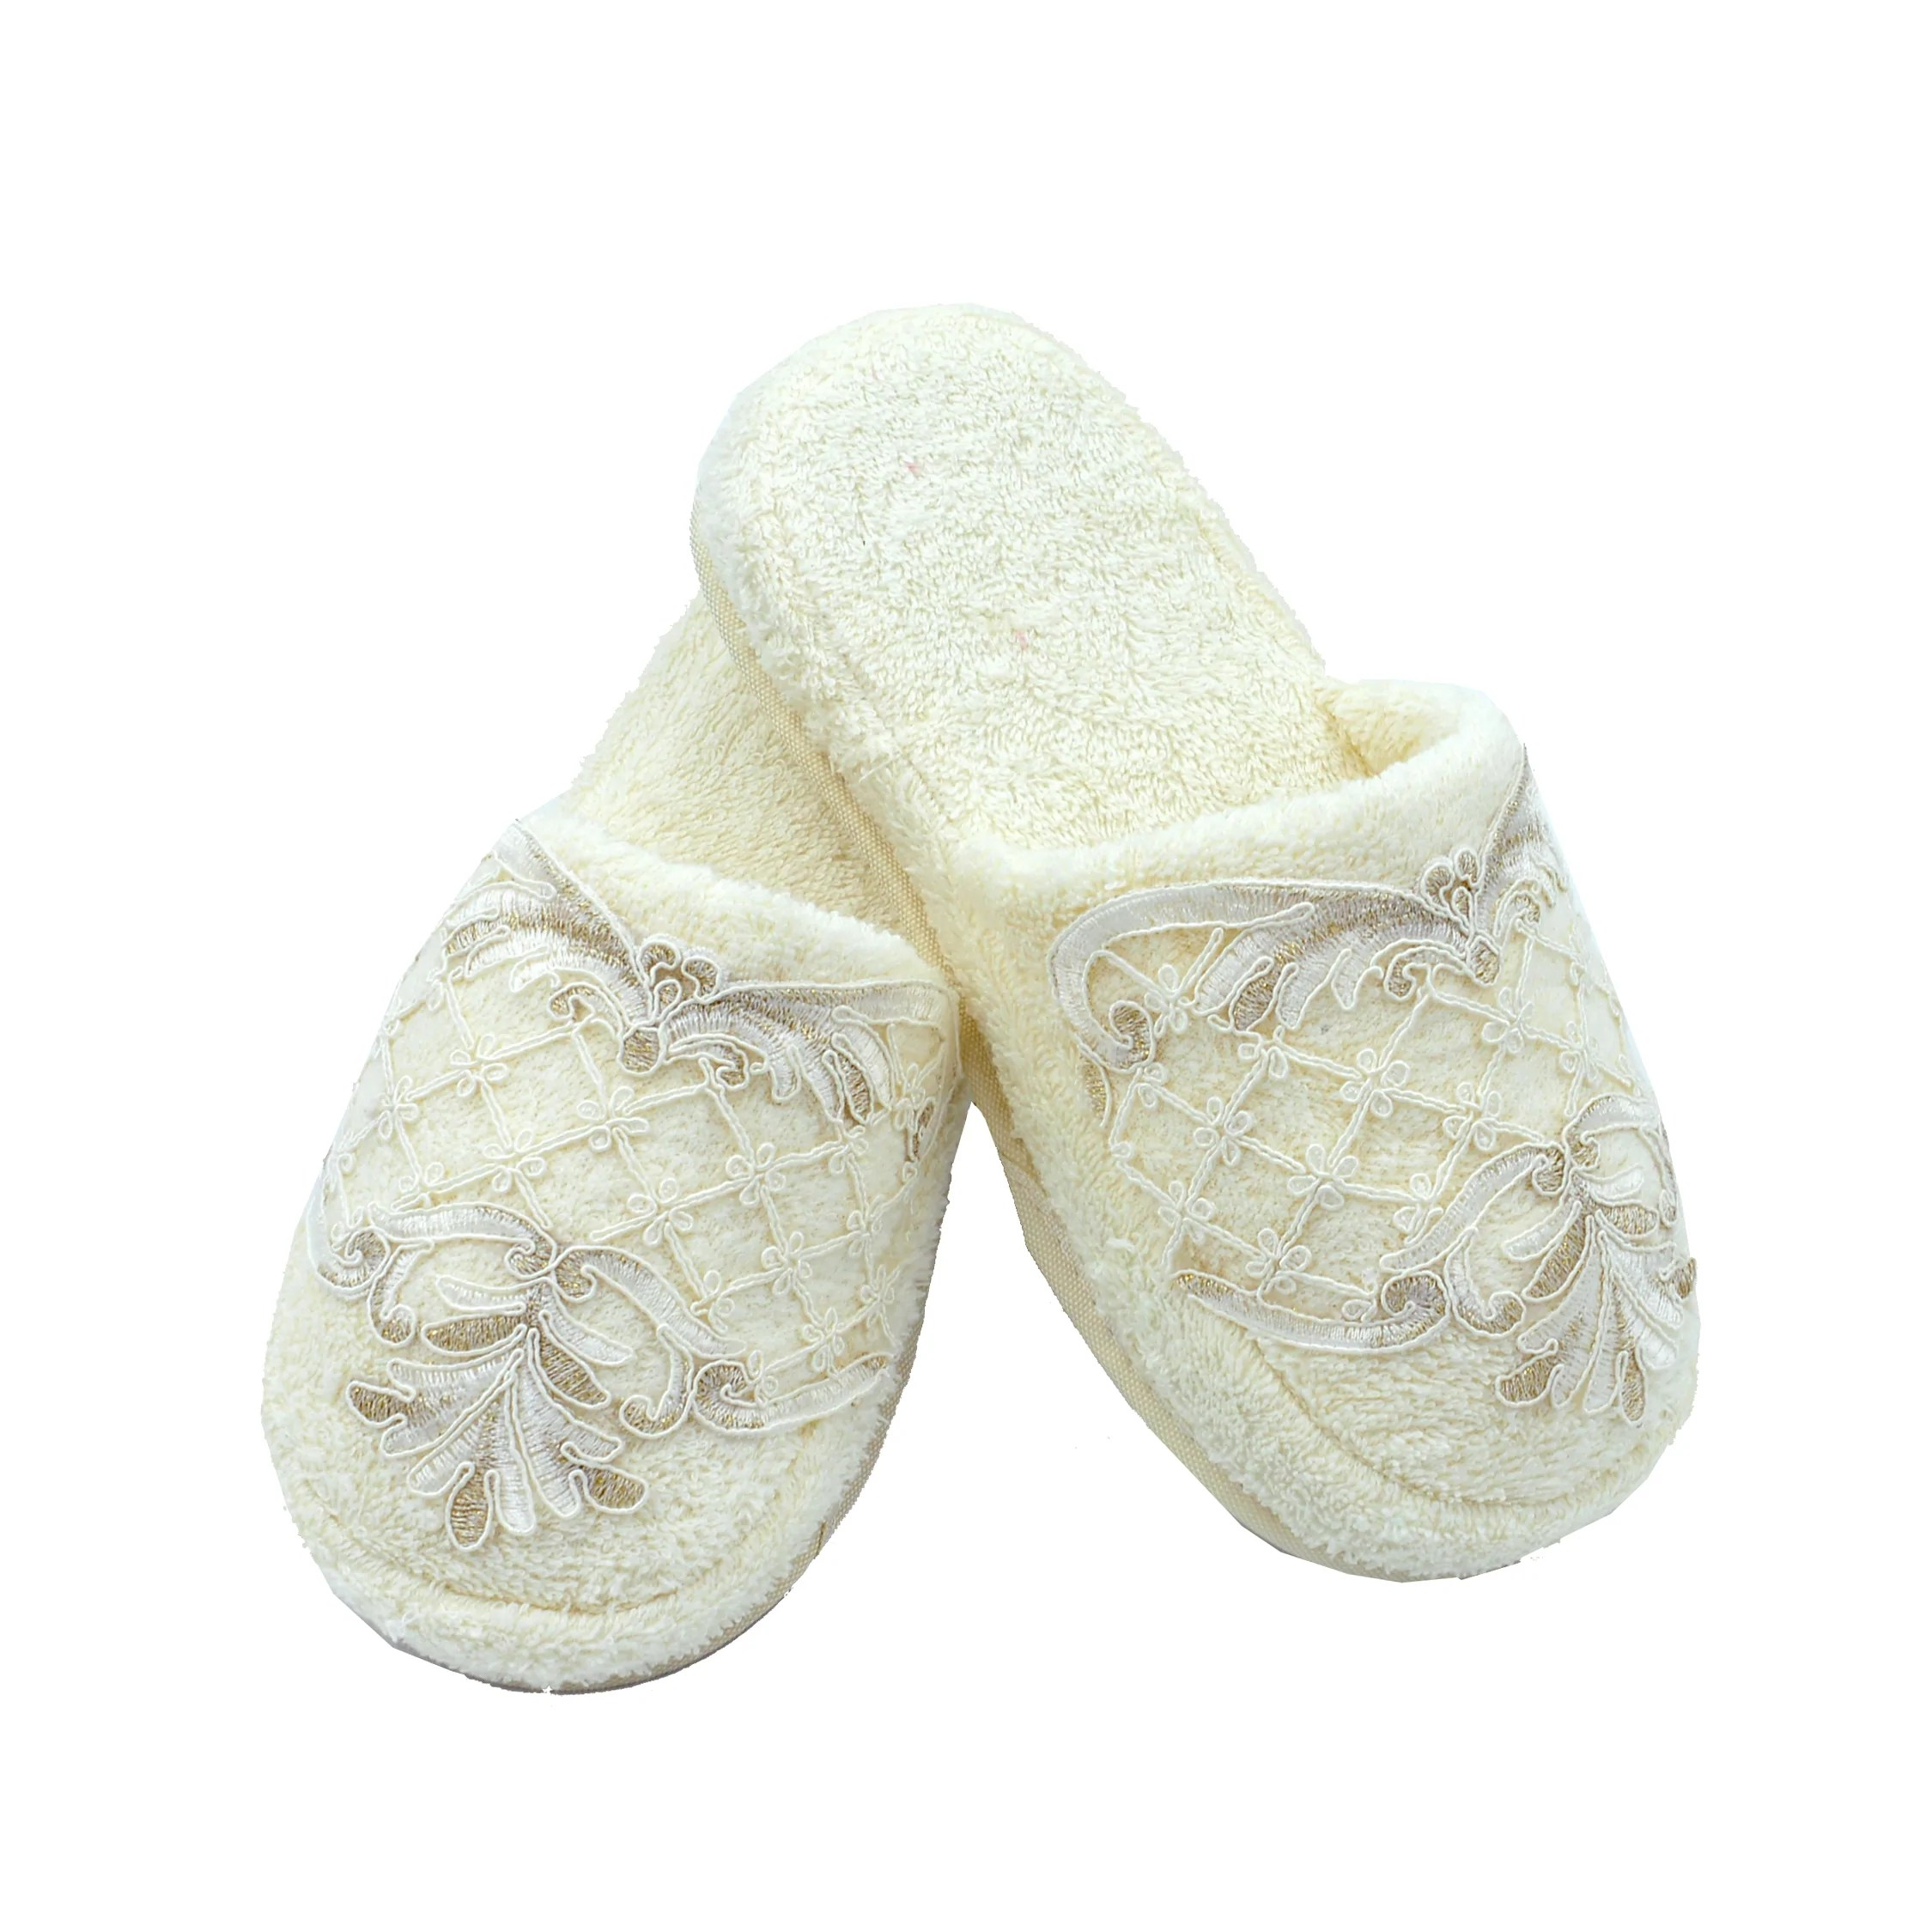 Baby Hotel Slippers Minteks Hotel Spa Slippers For Women And Men